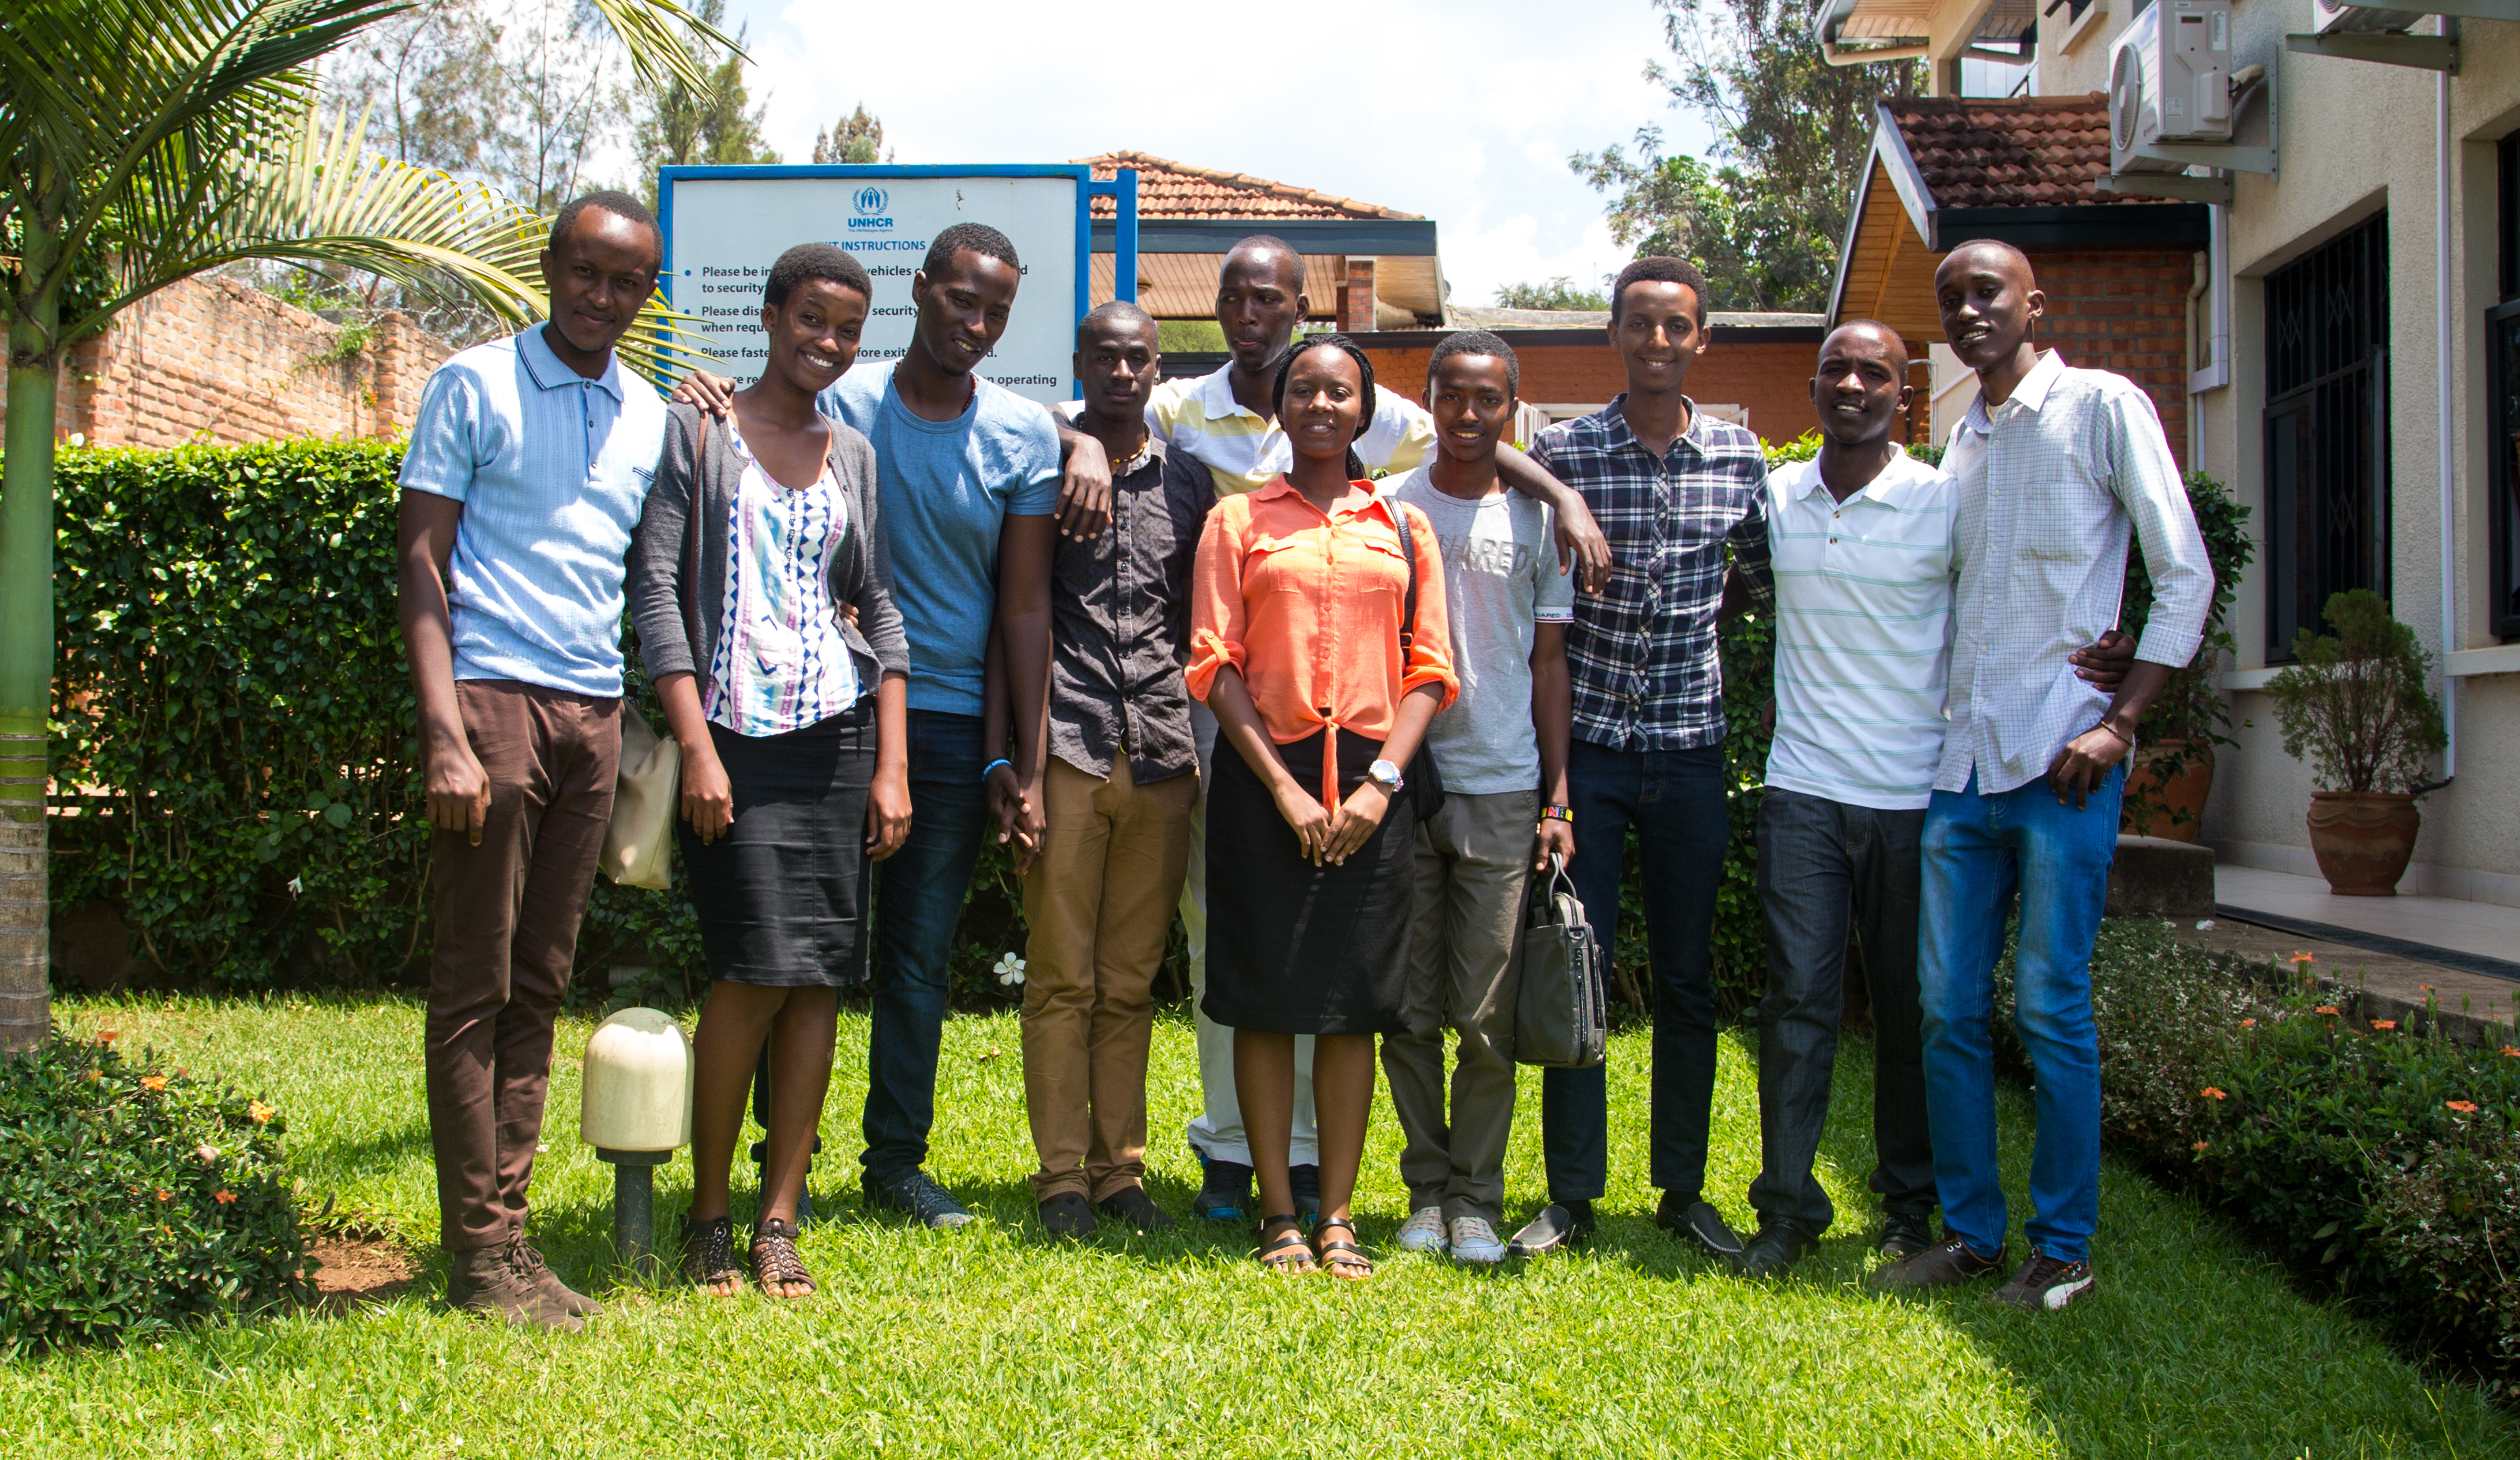 After witnessing violence and torture in Burundi, refugee youth in Rwanda are grateful for the chance to study abroad